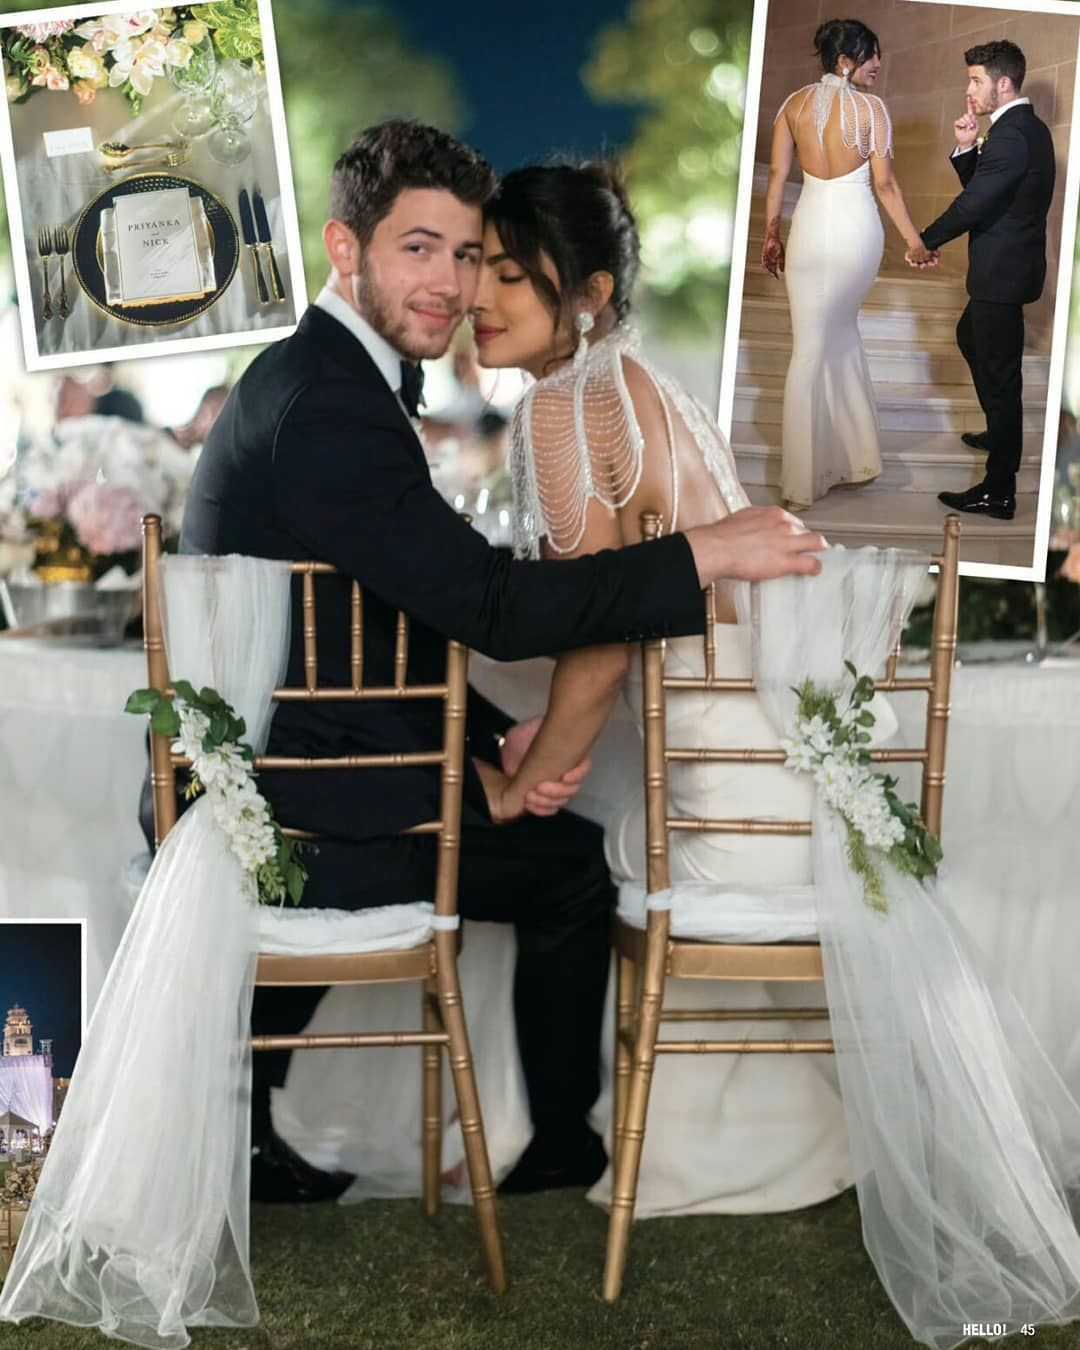 a517fb43b4 17 Things We Loved About Priyanka Chopra & Nick Jonas' Wedding! - UrbanClap